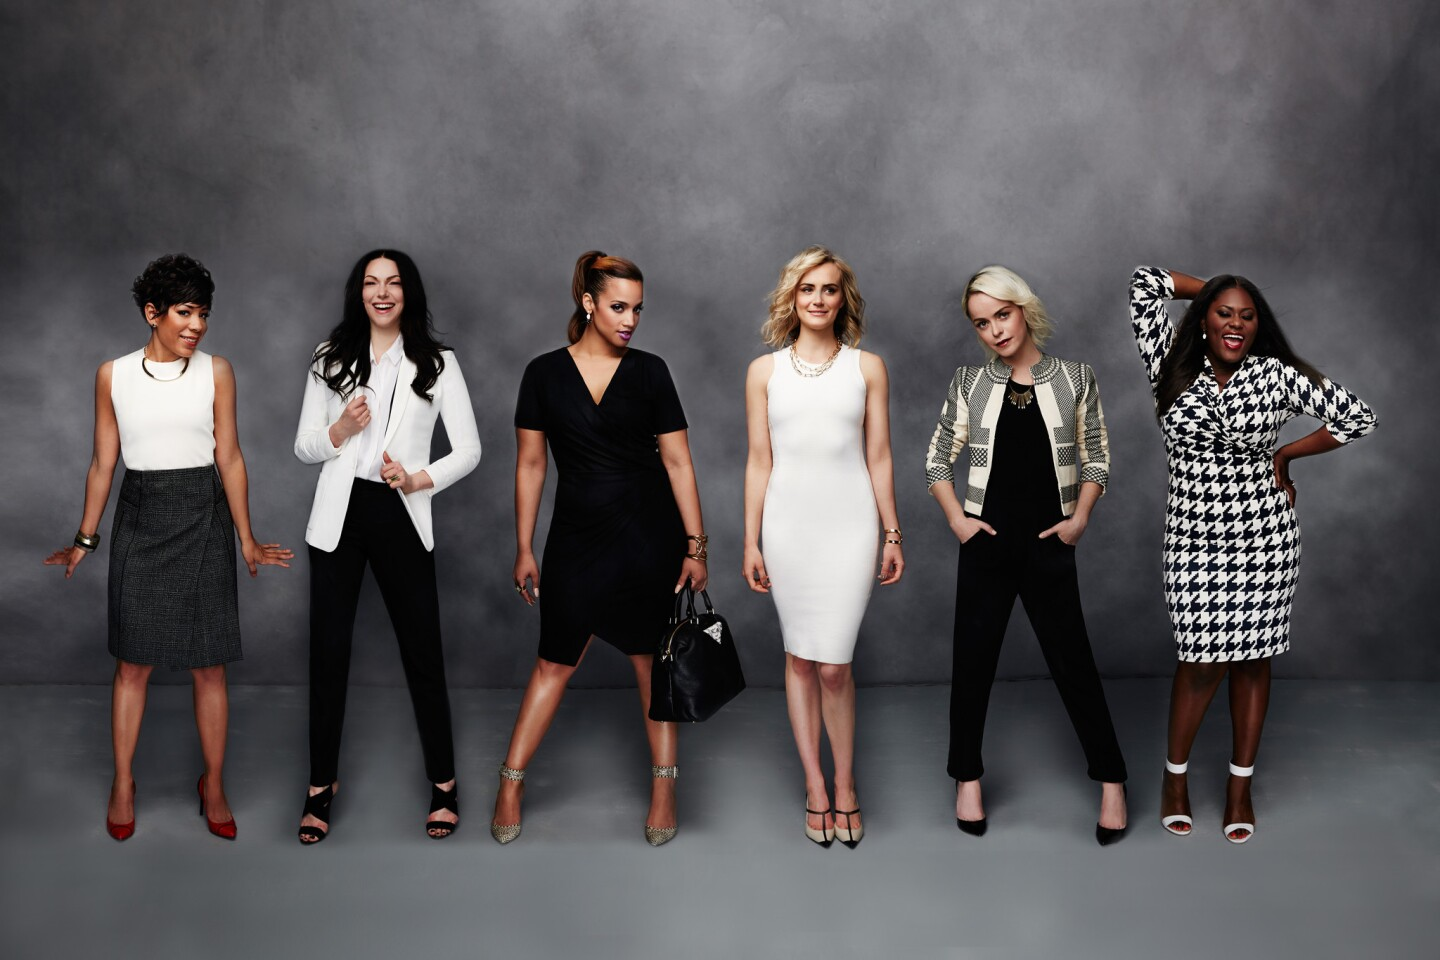 """Members of the """"Orange is the New Black"""" cast model some of the clothing being sold on Gilt.com to benefit Dress for Success. See some of the 300 items for sale in the following slides."""